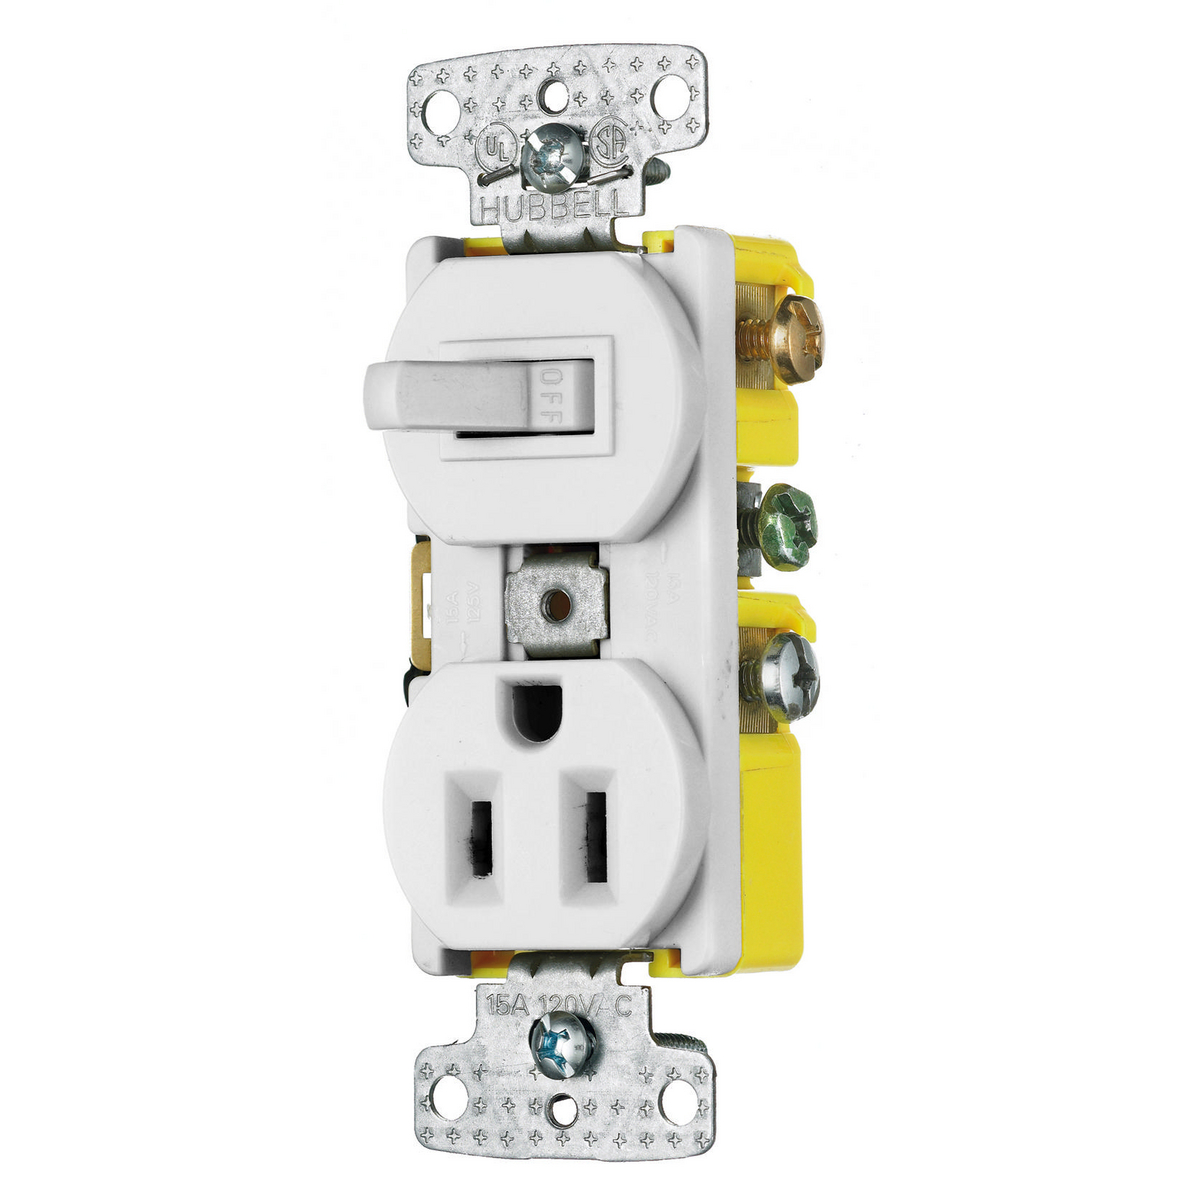 Hubbell RC108W 15 Amp 120/125 Volt 1-Pole Switch 2-Pole 3-Wire Receptacle White Combination Switch